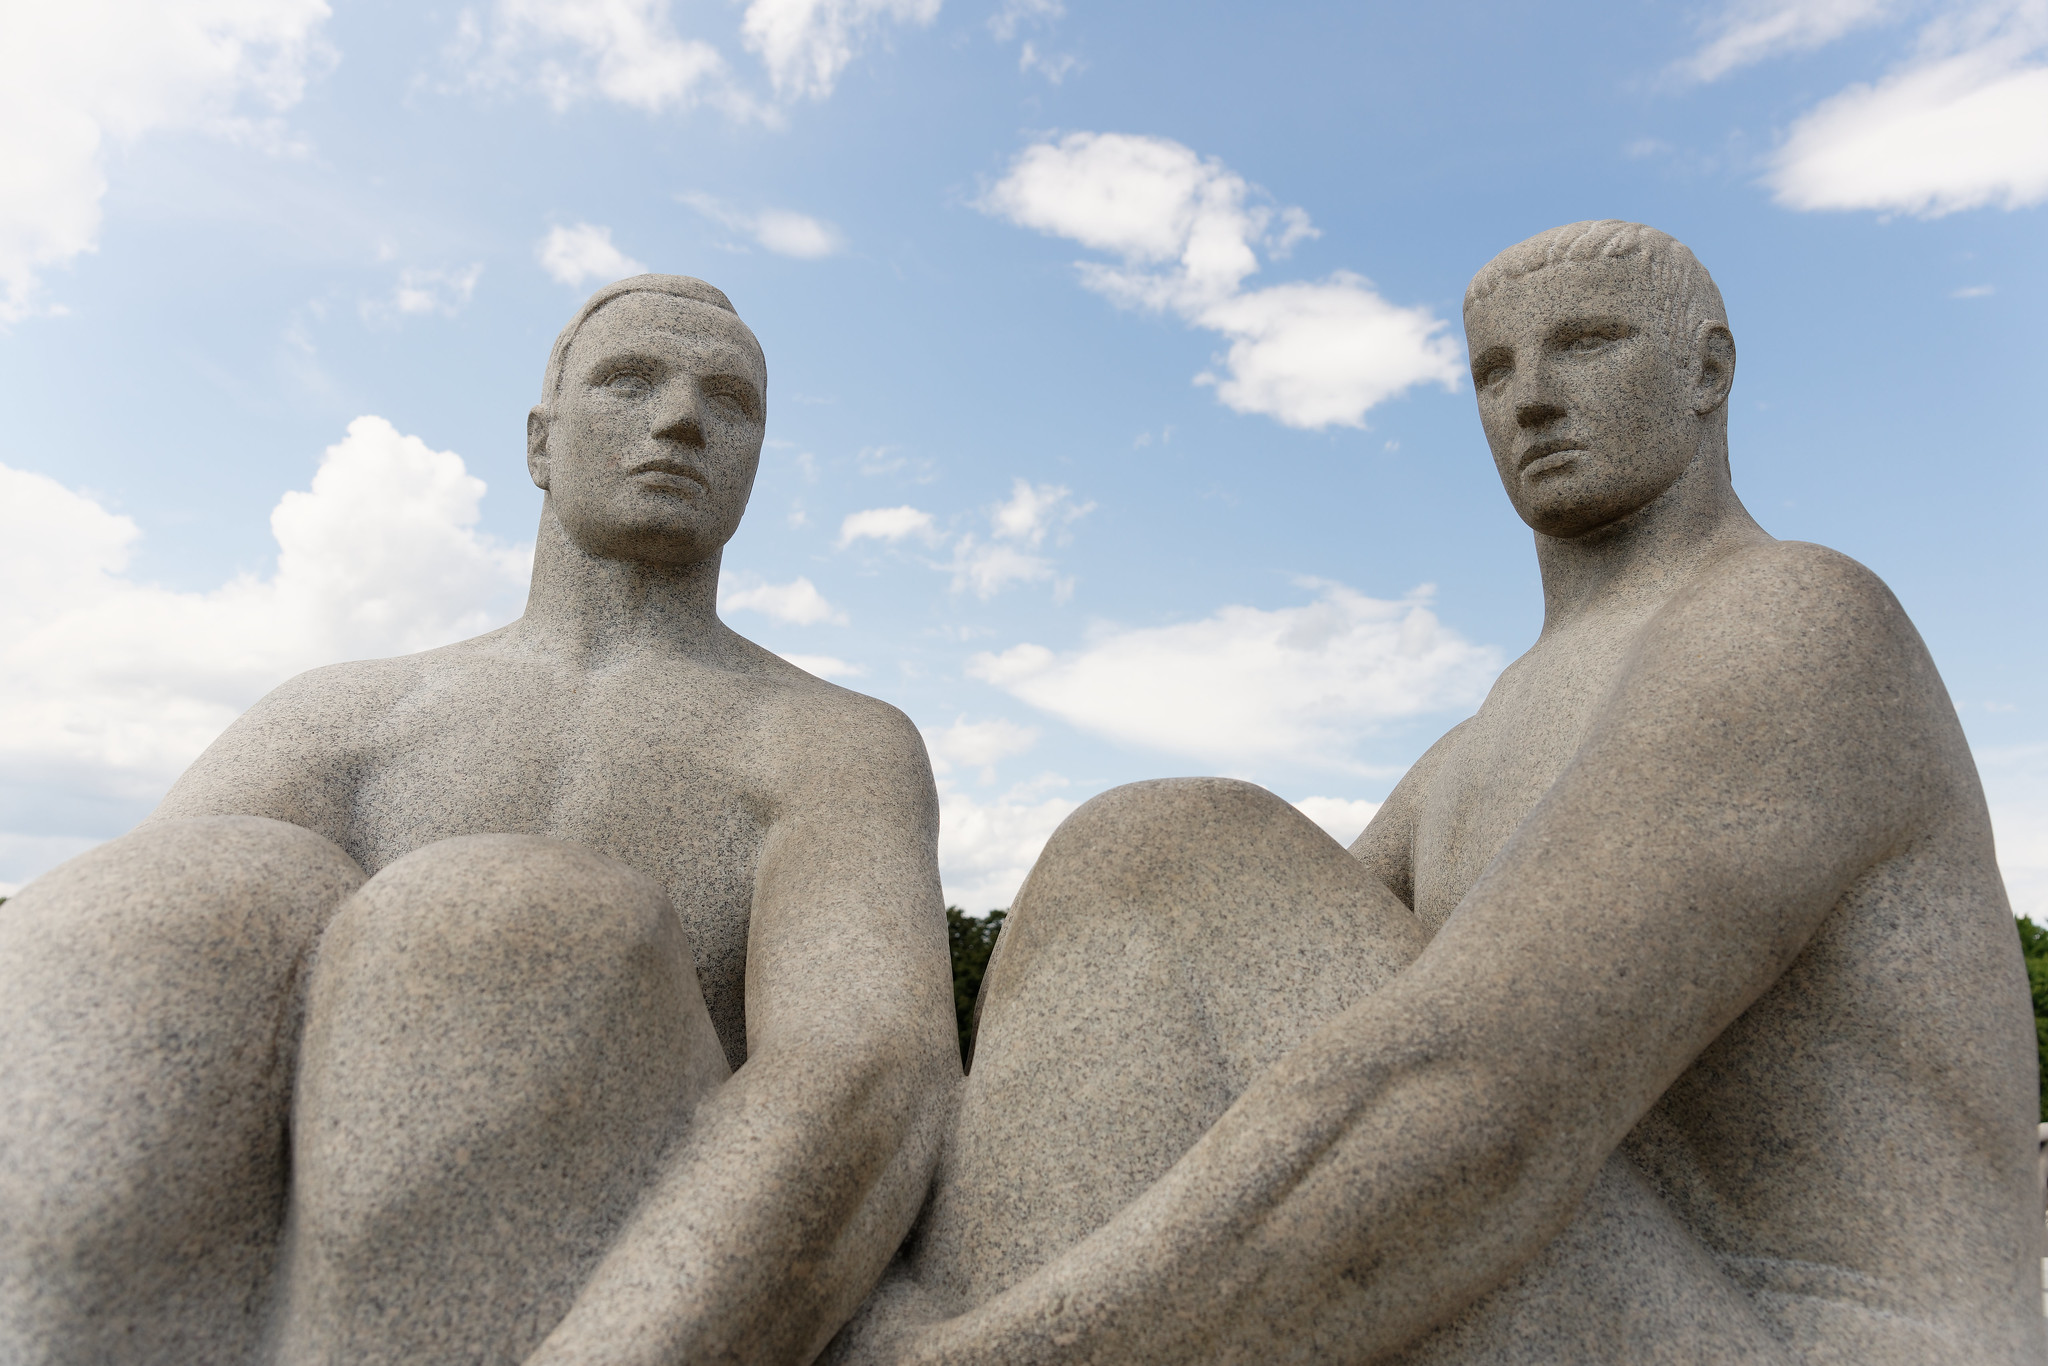 Vigeland Sculpture Park - Oslo, Norway